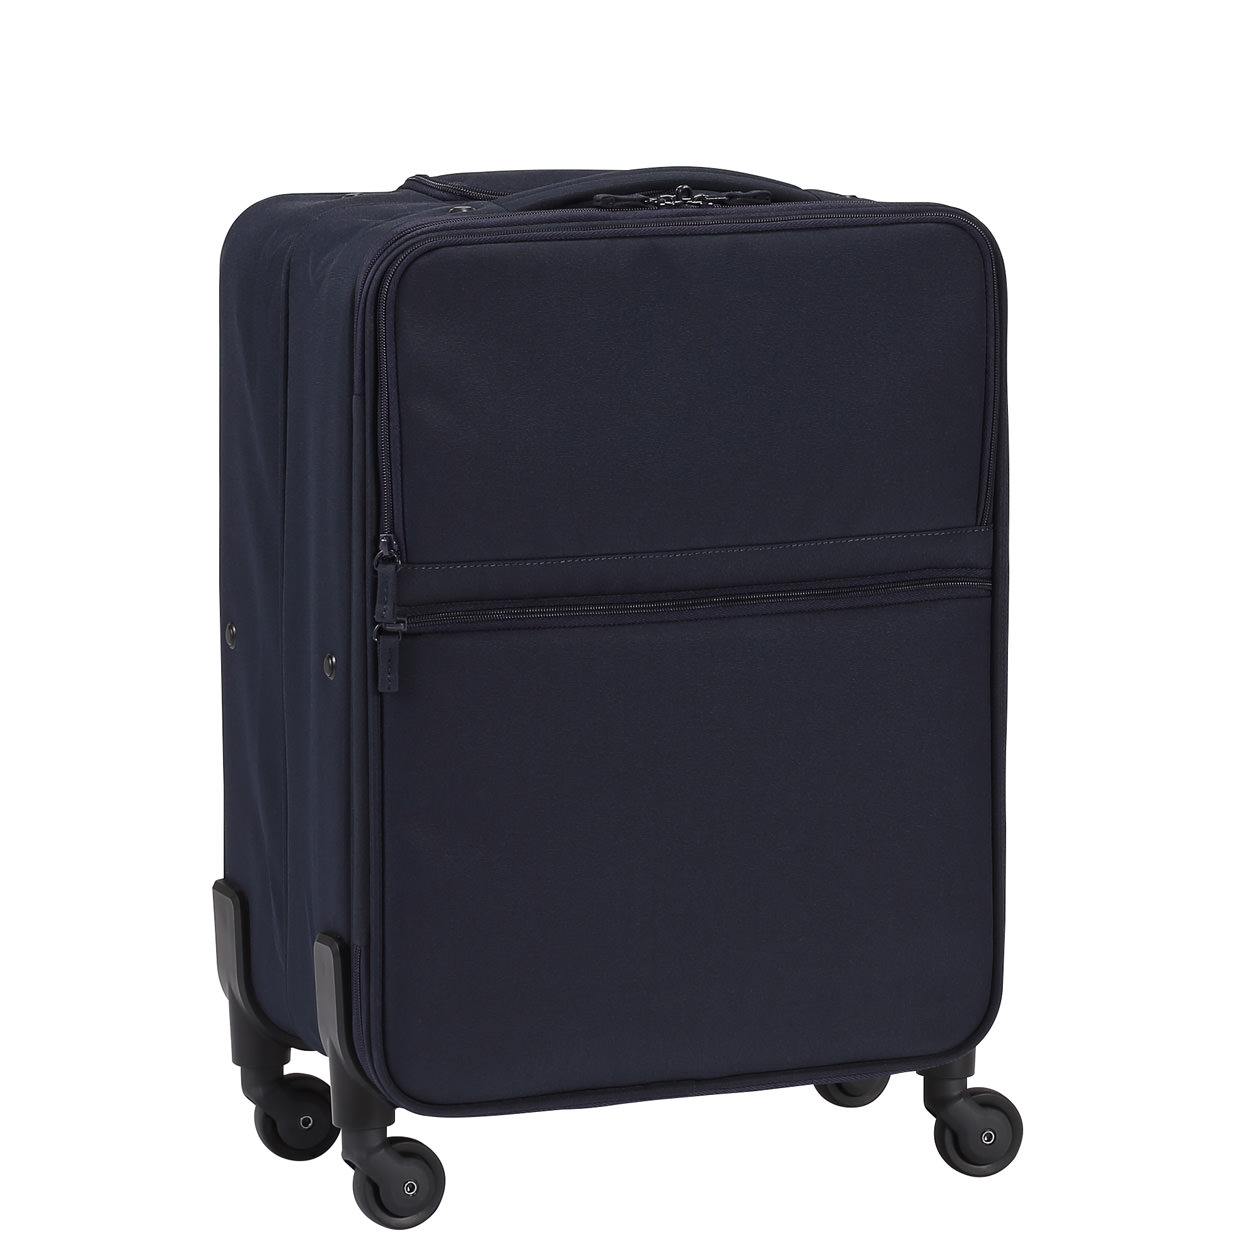 Valise Muji Foldable Soft Carry Suitcase S 無印良品 Muji